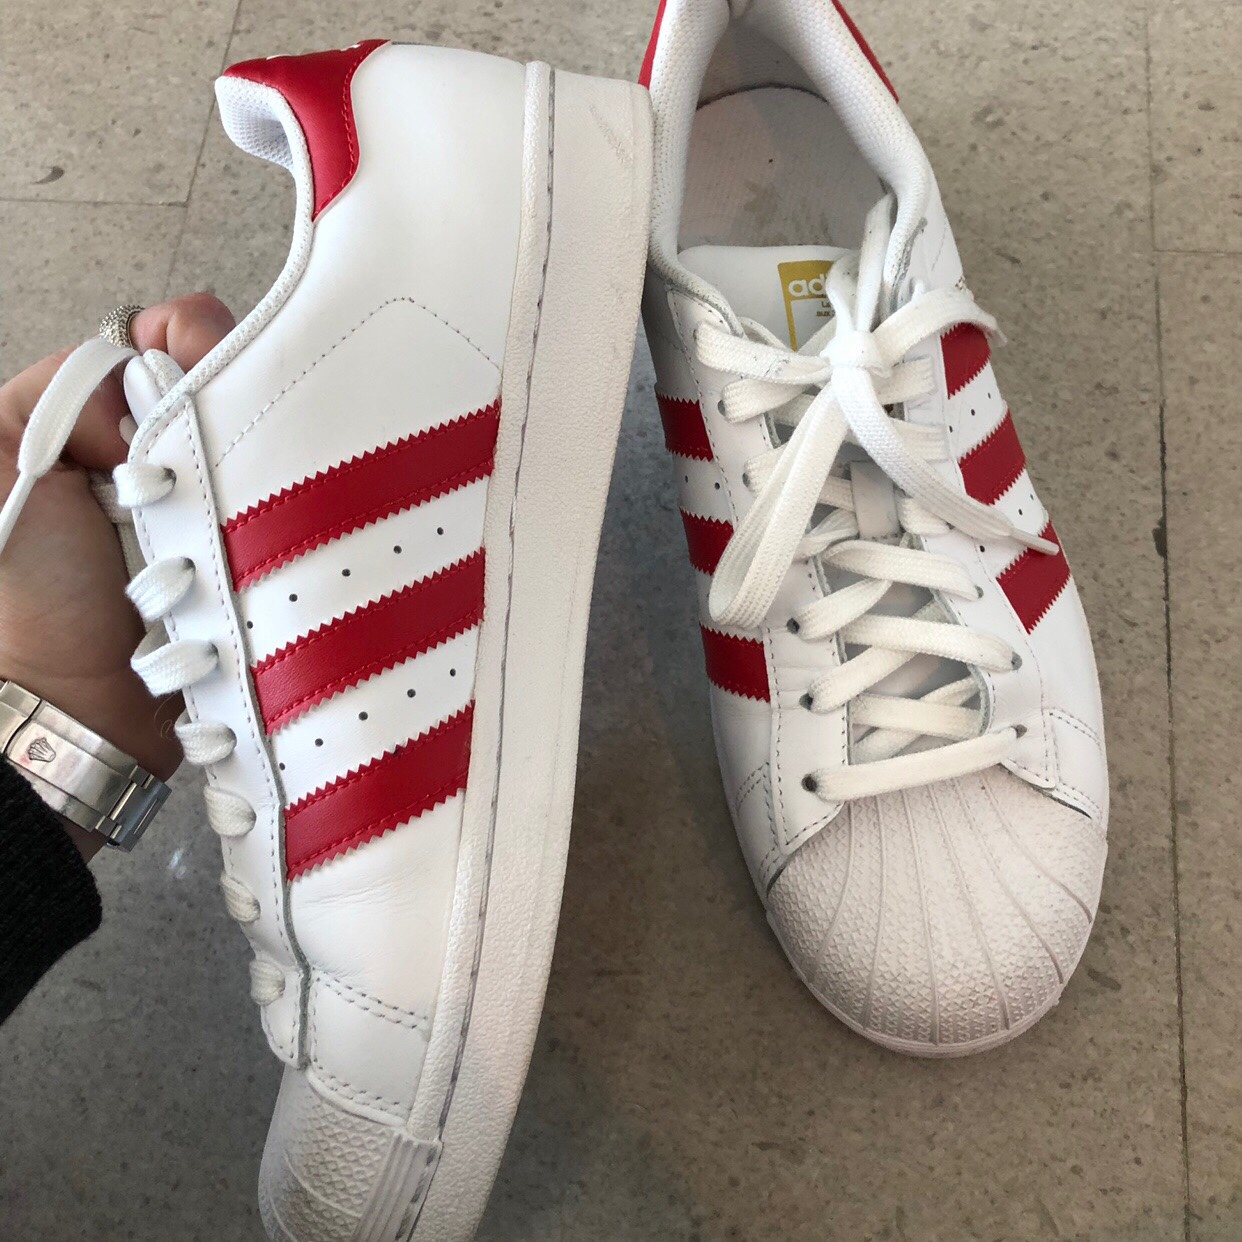 Adidas superstar sneaker in red and white Rare    - Depop